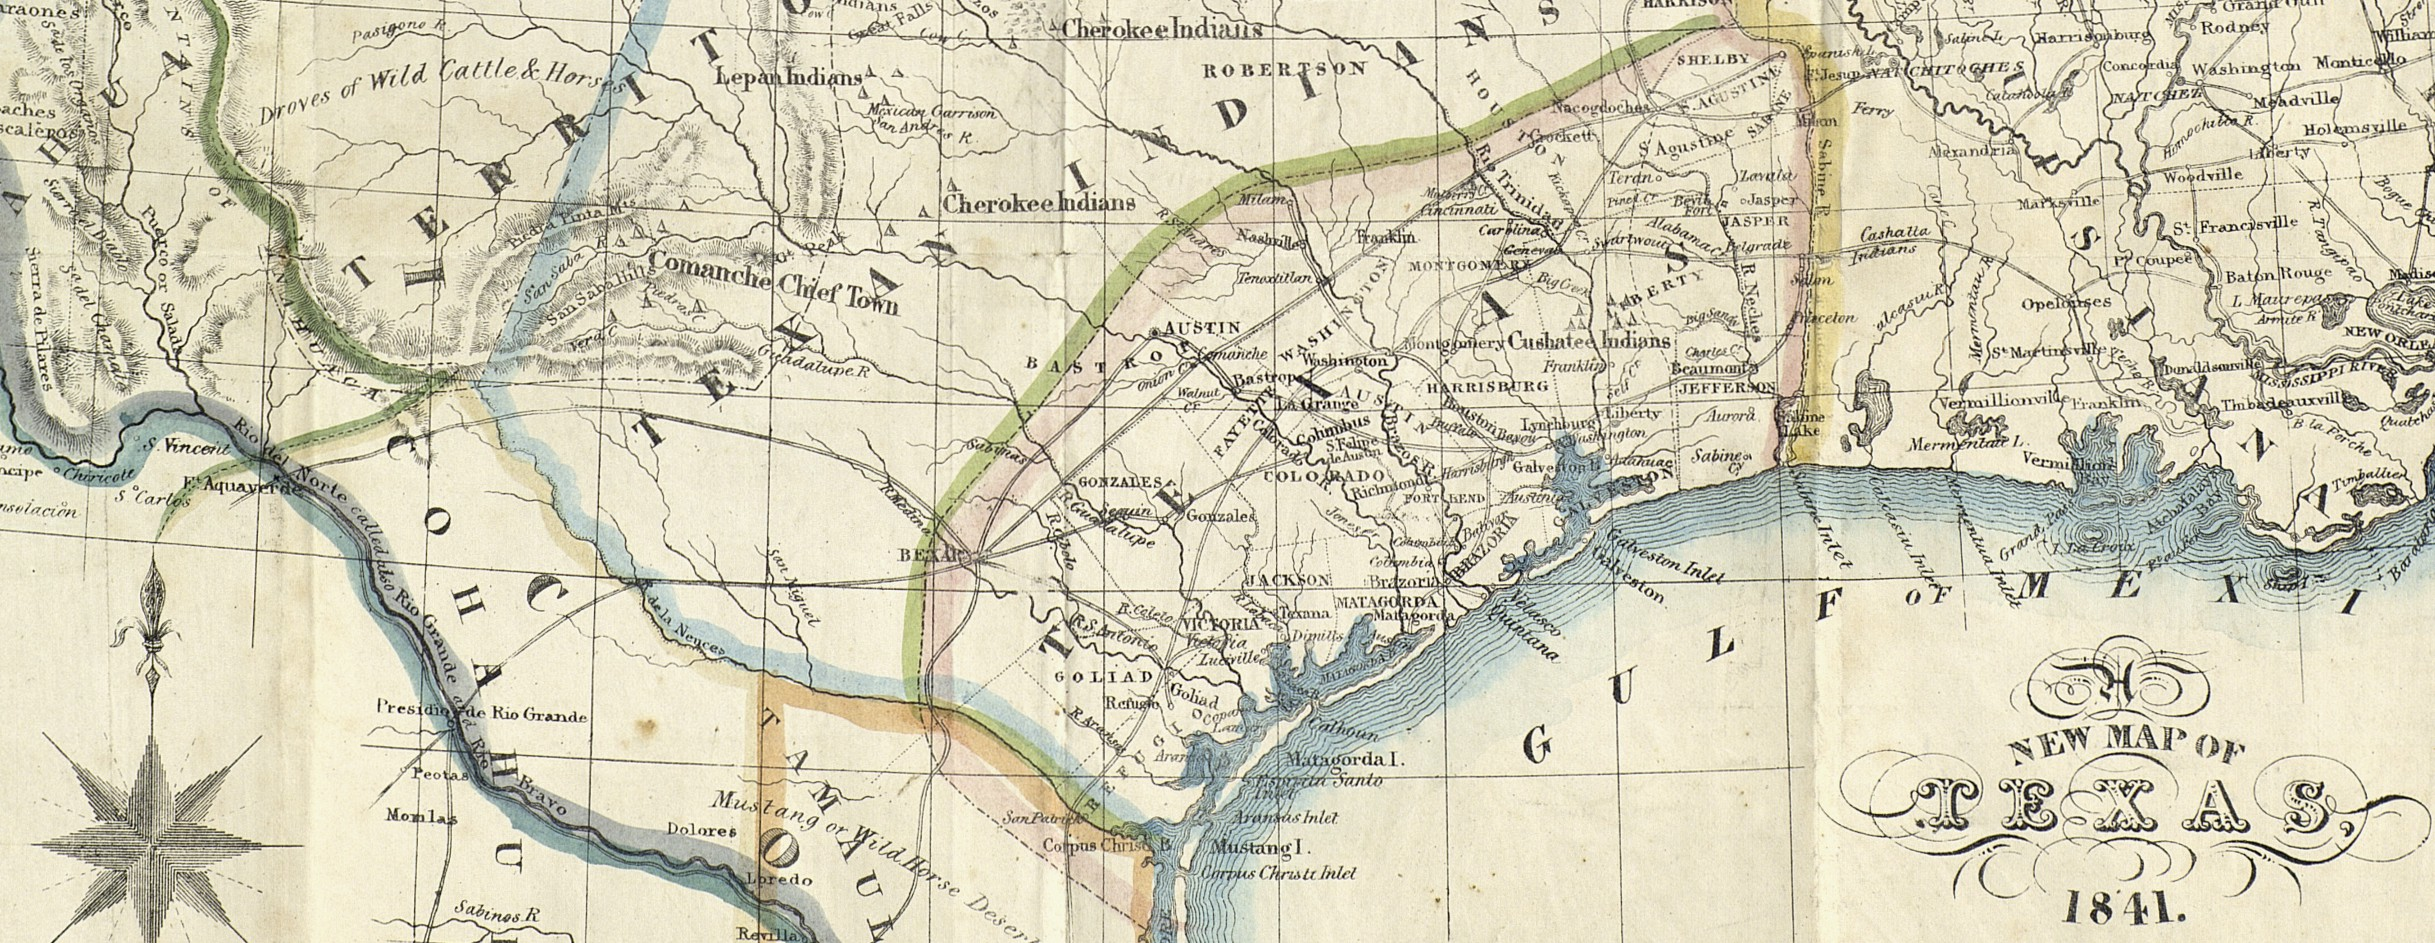 Austin Tx Map Of Texas.A New Map Of Texas 1841 Save Texas History Medium